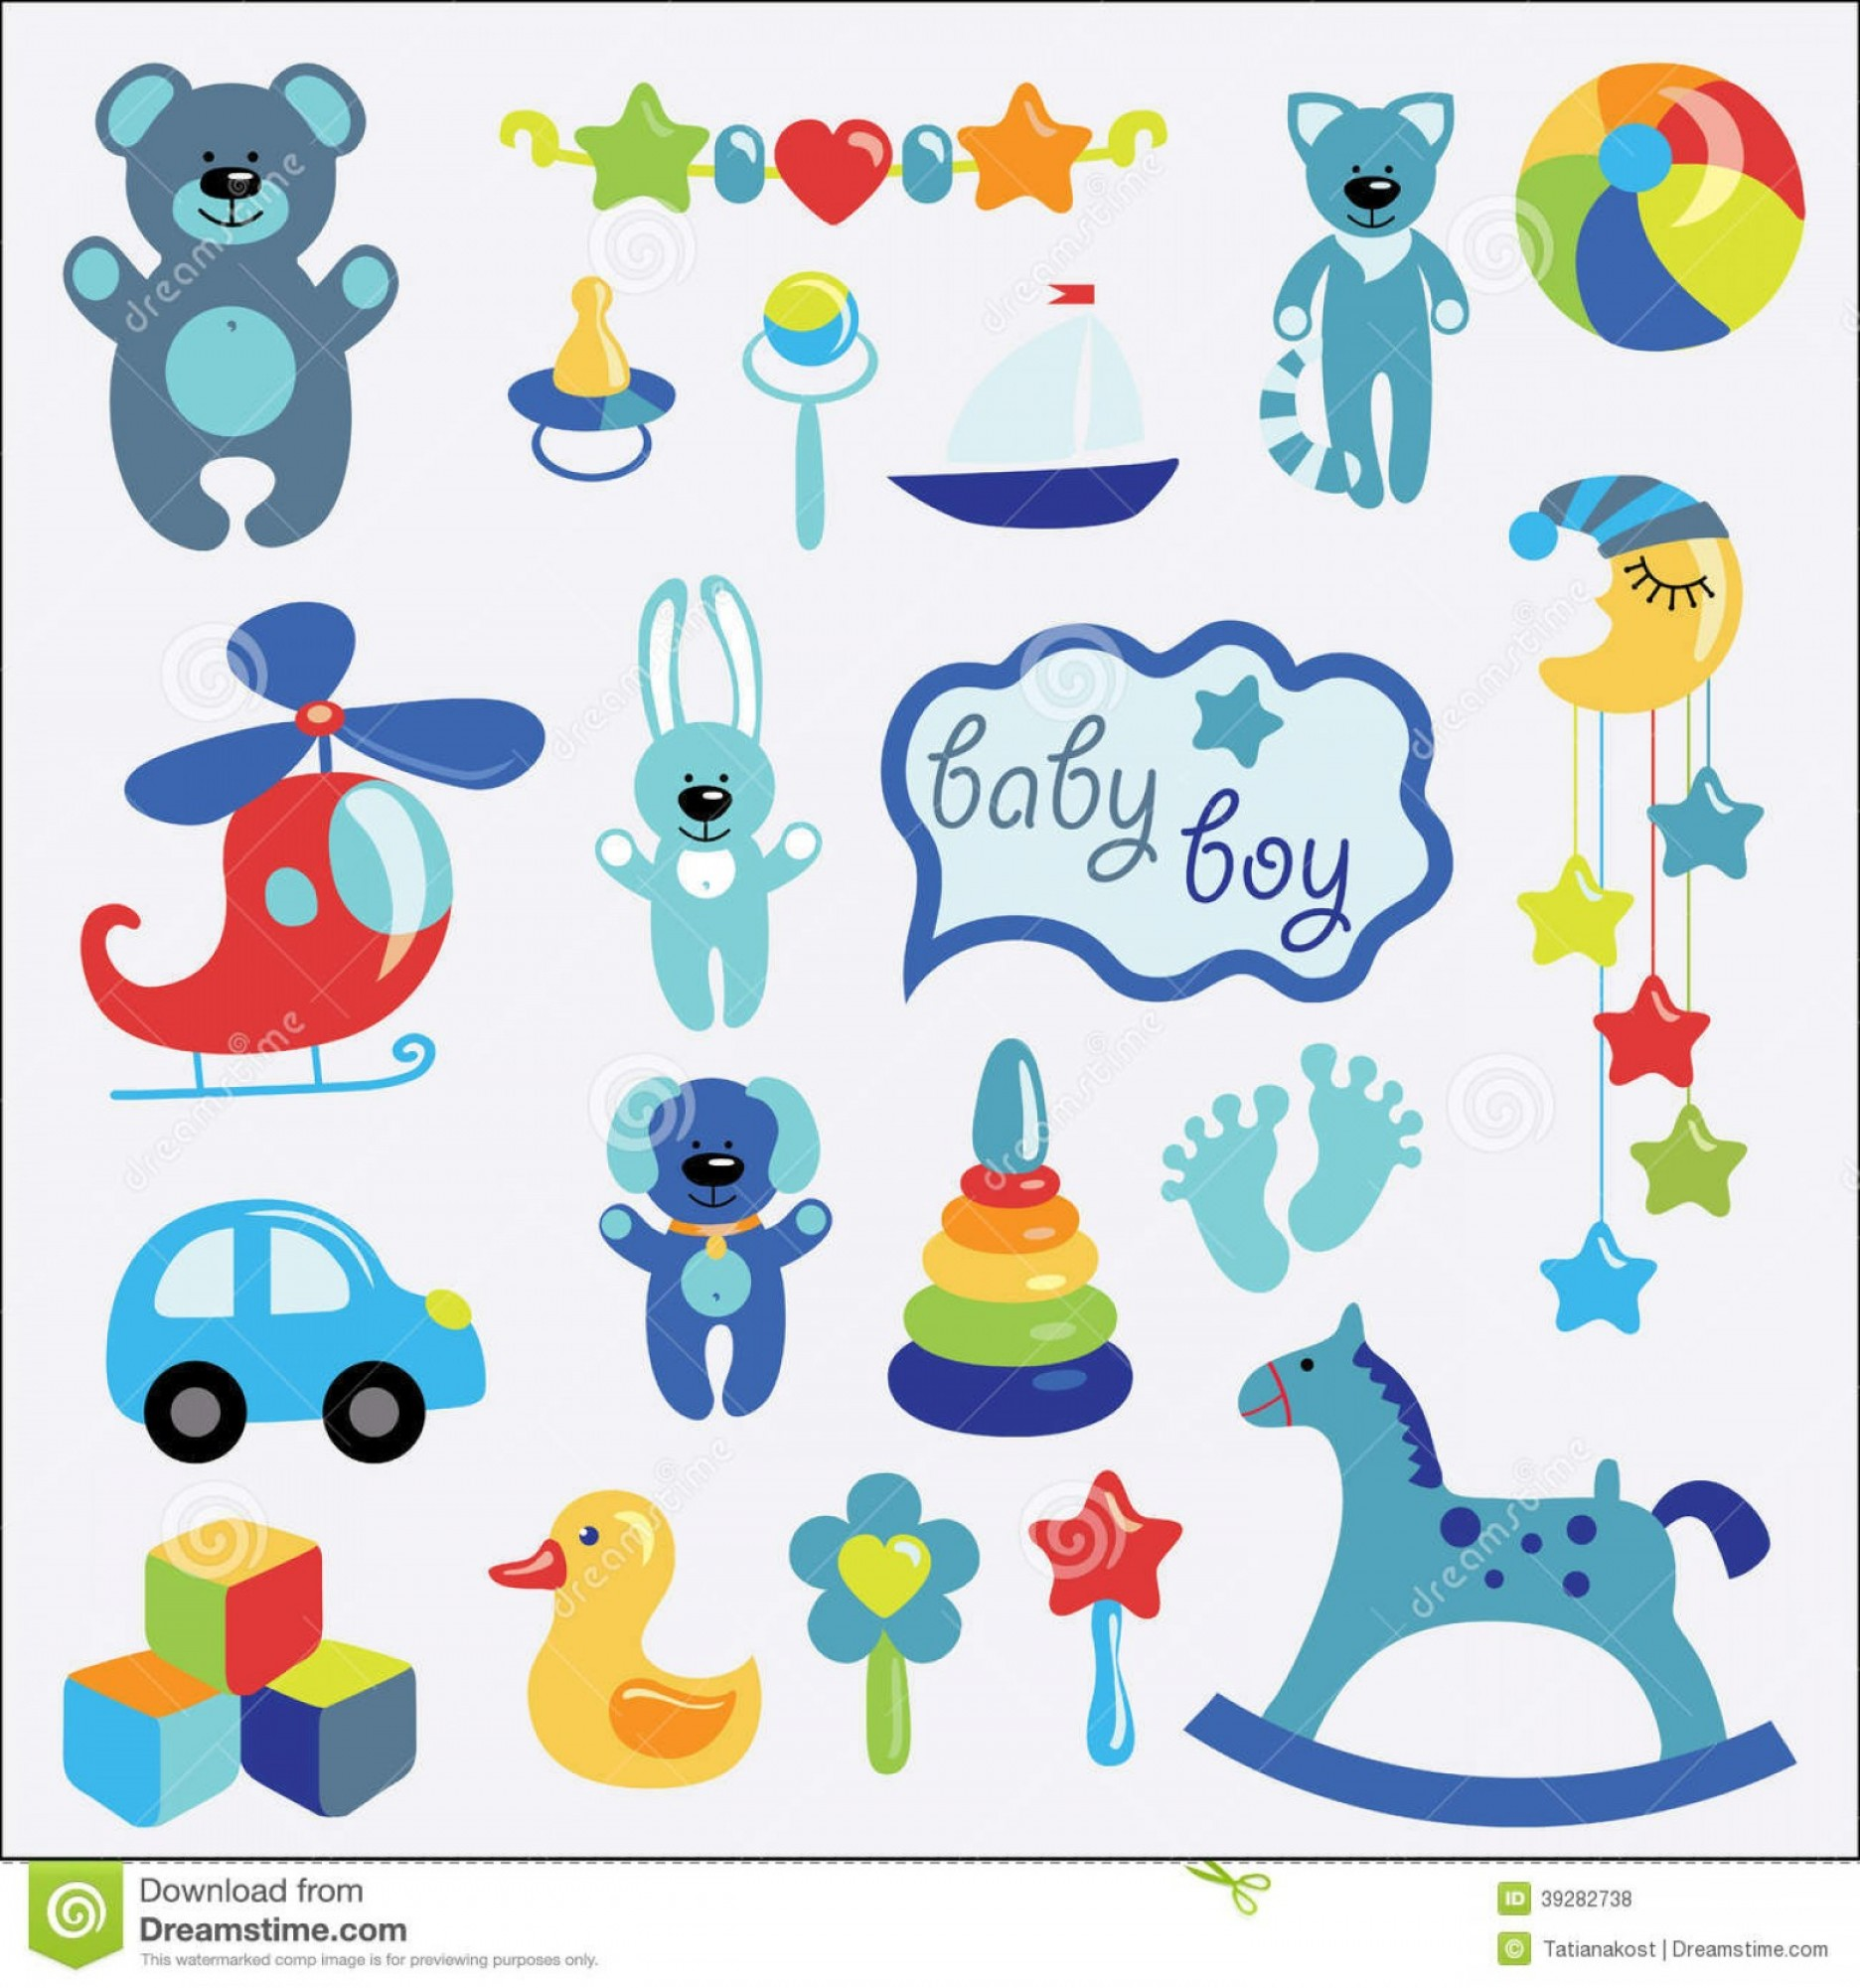 Baby Toy Vector: Royalty Free Stock Images Baby Toys Set Collection Little Girl Cute Items Small Child Cartoon Icons Littie Vector Illustration Image